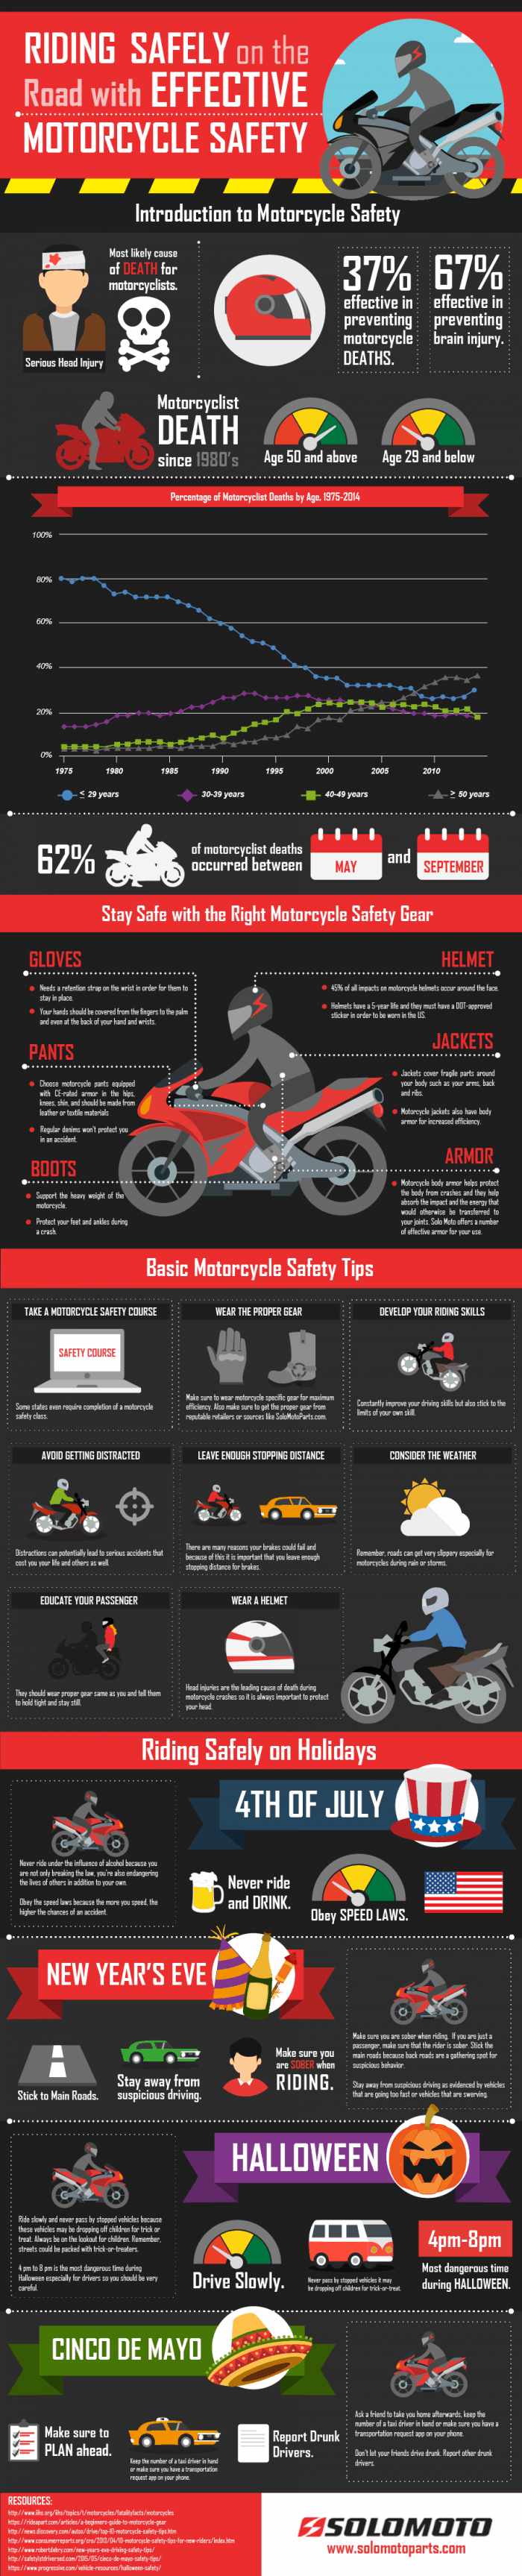 Riding safely on the road with effective motorcycle safety